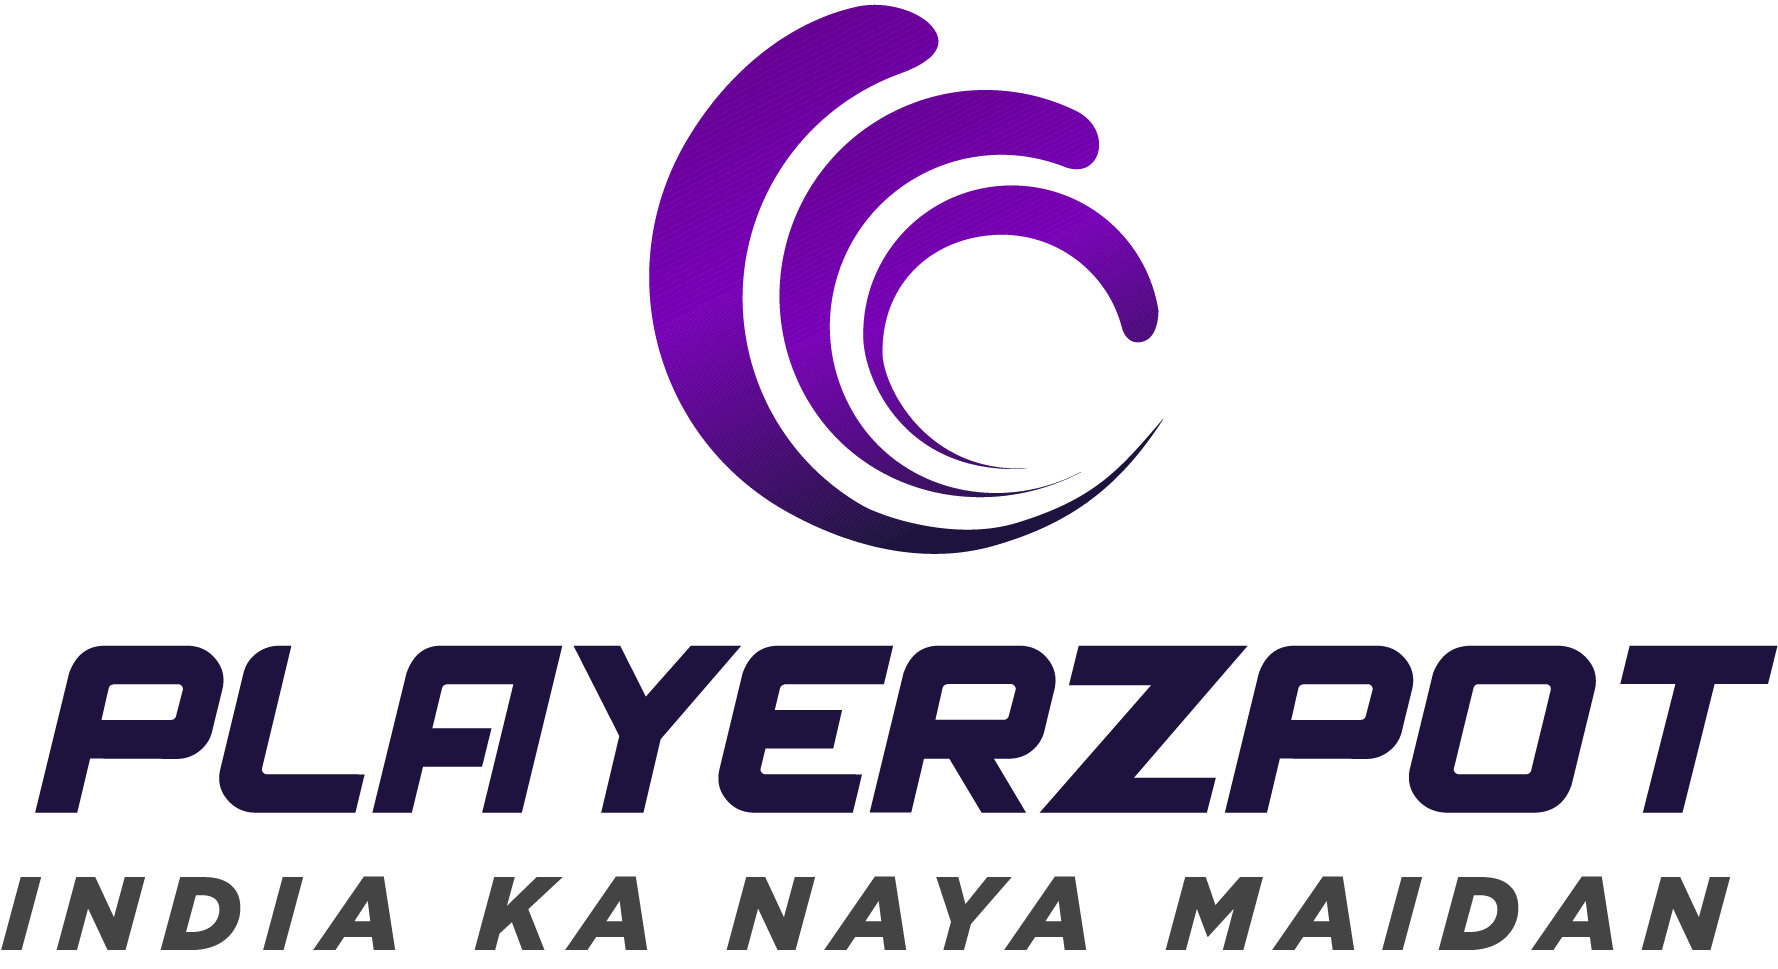 PlayerzPot Referral Code: IHD12345 | Refer & Earn - 10% For Lifetime